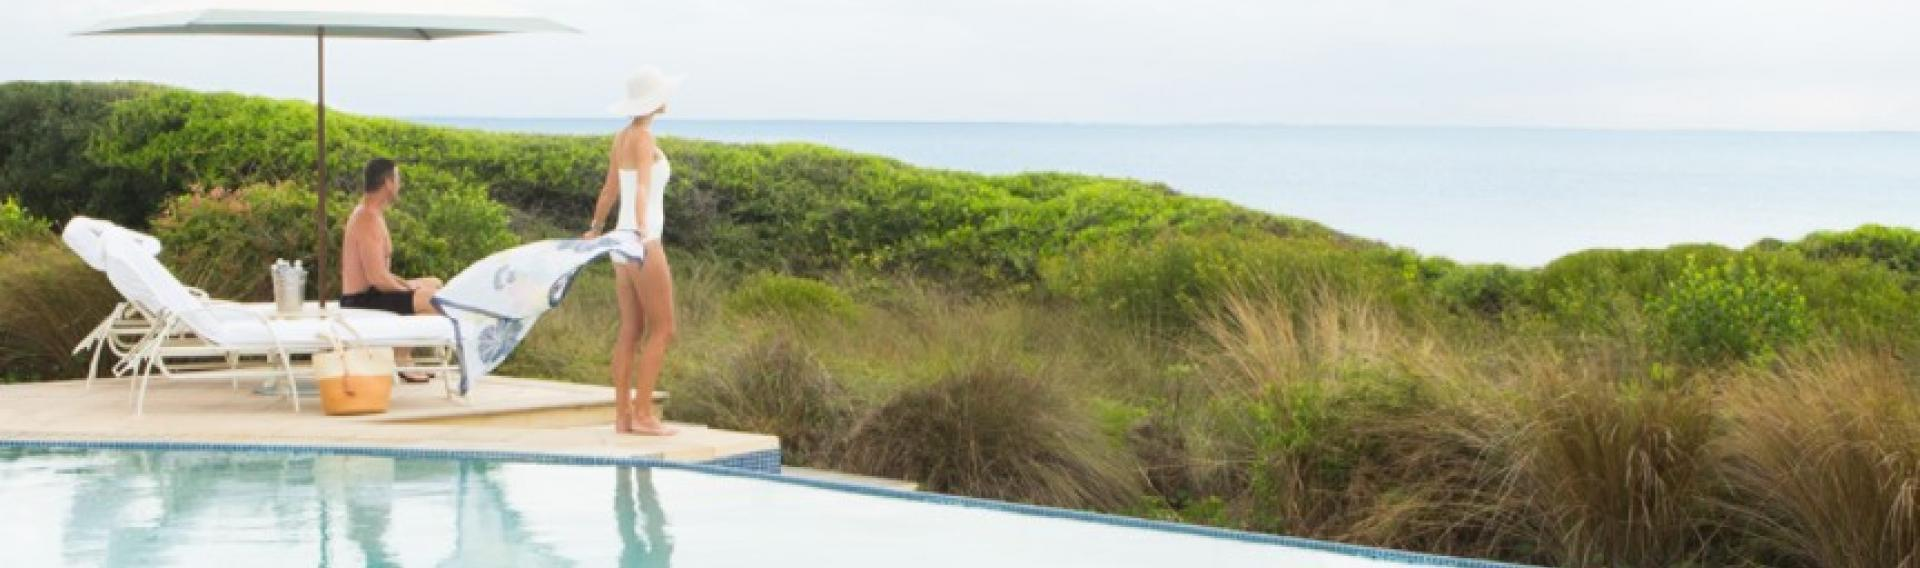 View of two people at the pool over looking the ocean, Kiawah Island South Carolina CME CLE CE destination.